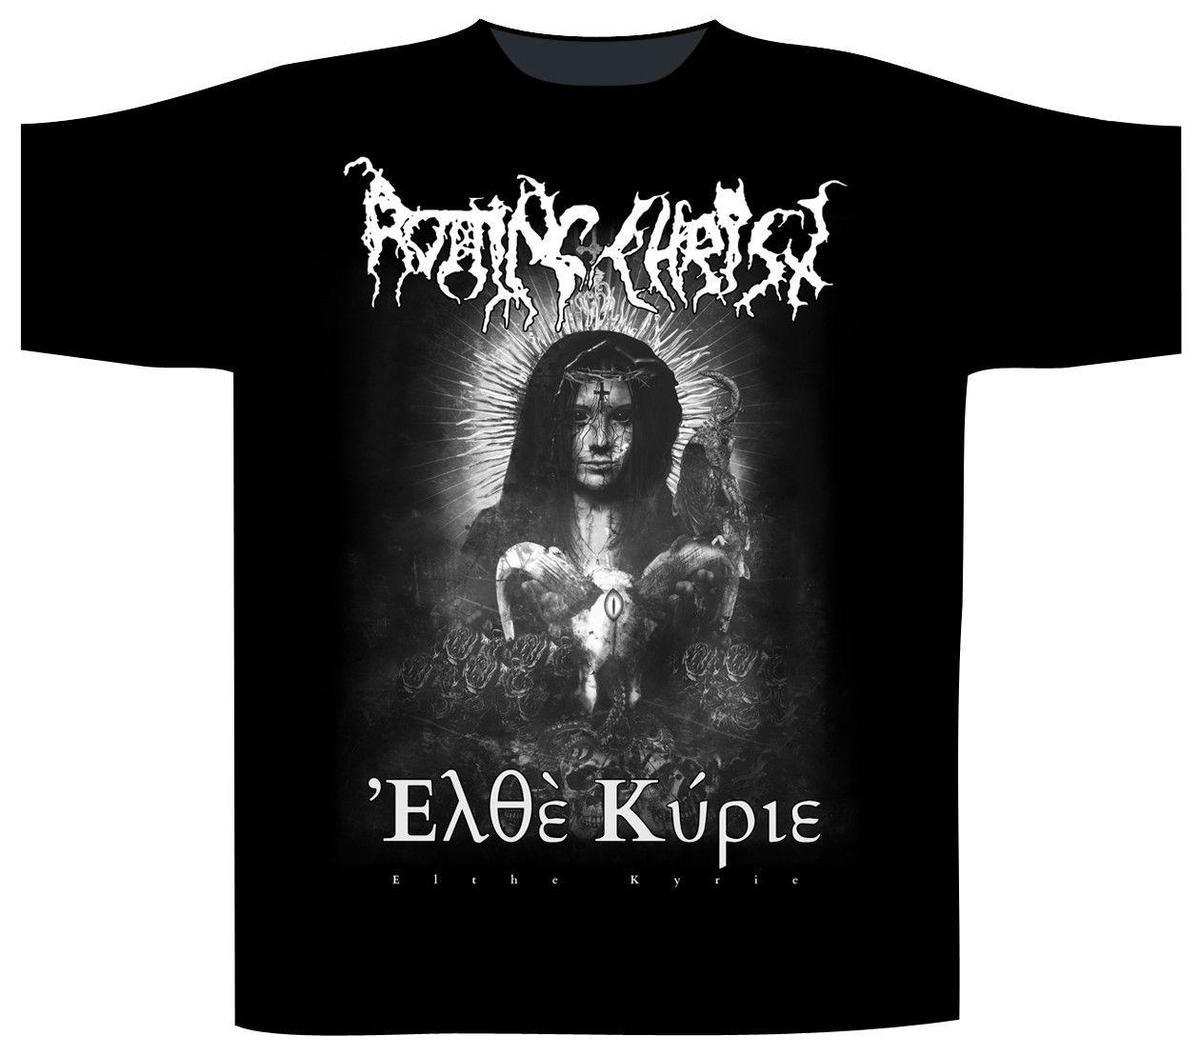 b67bdef56 Rotting Christ 'Elthe Kyrie' T Shirt NEW & OFFICIAL Really Funny ...